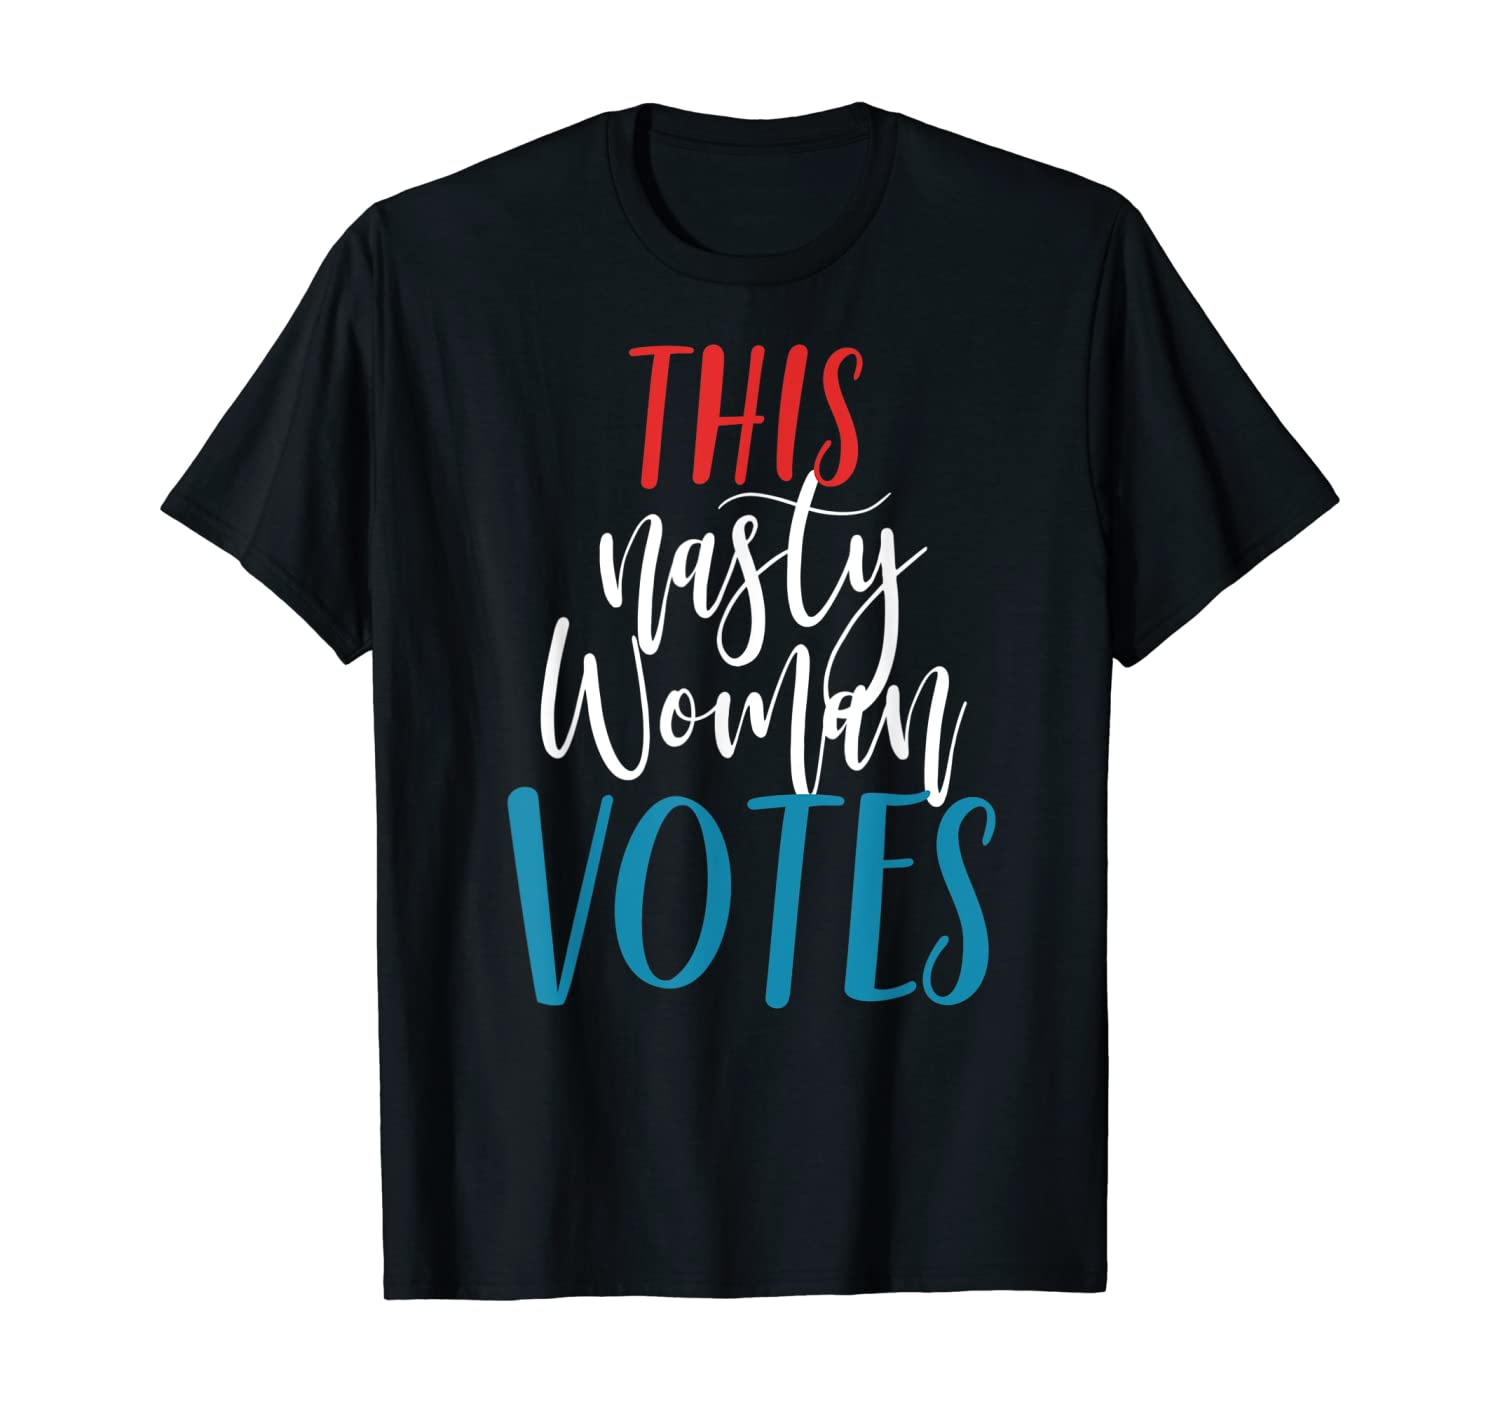 This Nasty Woman Votes Feminist Political Liberal Voting T-Shirt